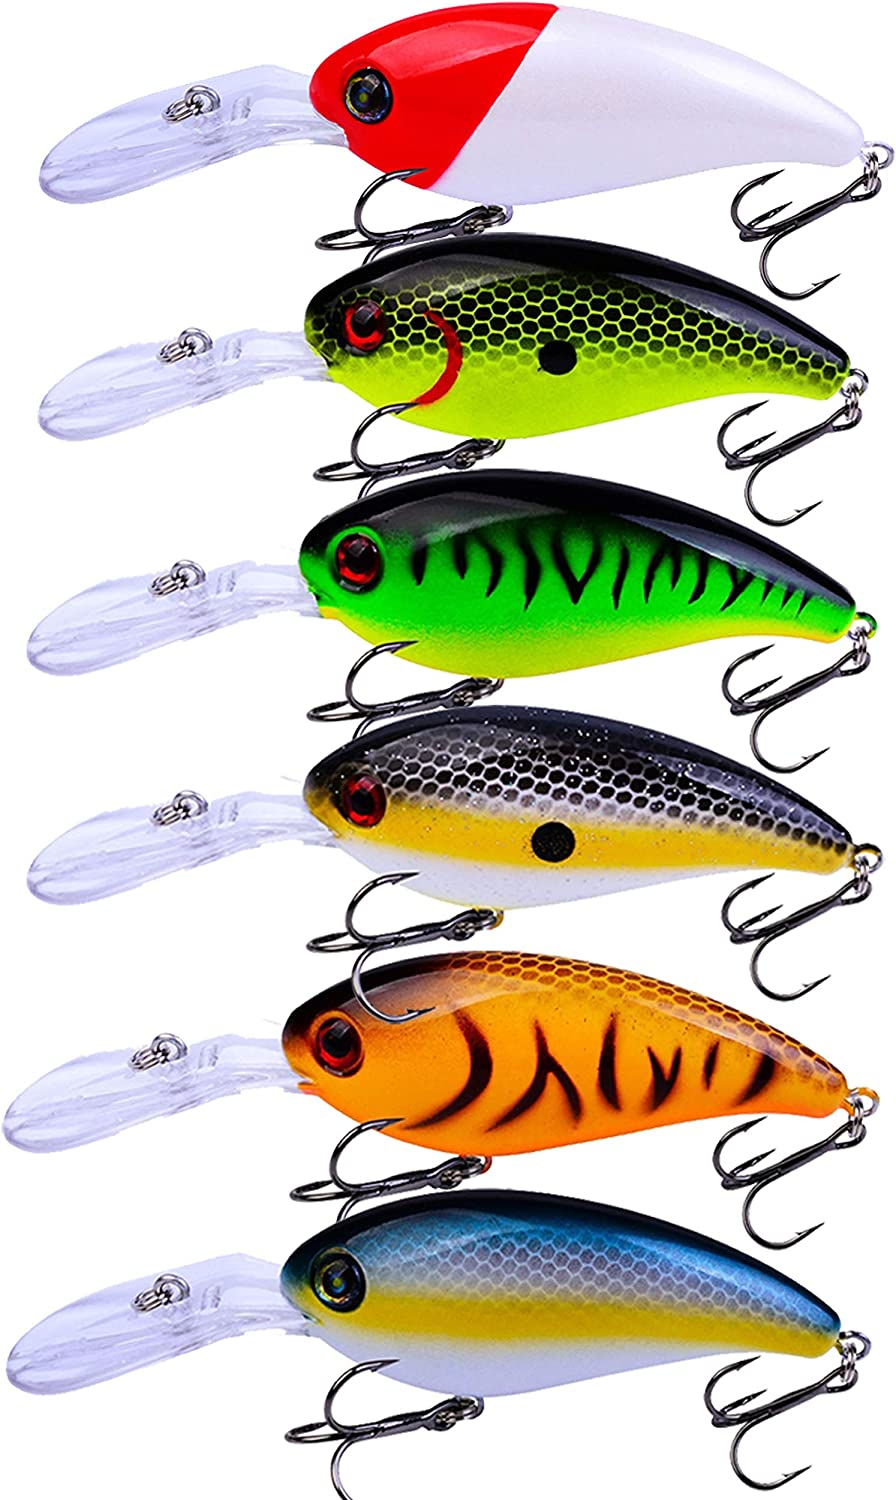 Facikono Crankbait Bass Fishing Lures, Topwater Hard Swimbait for Bass Trout Crappie Saltwater Freshwater Fishing